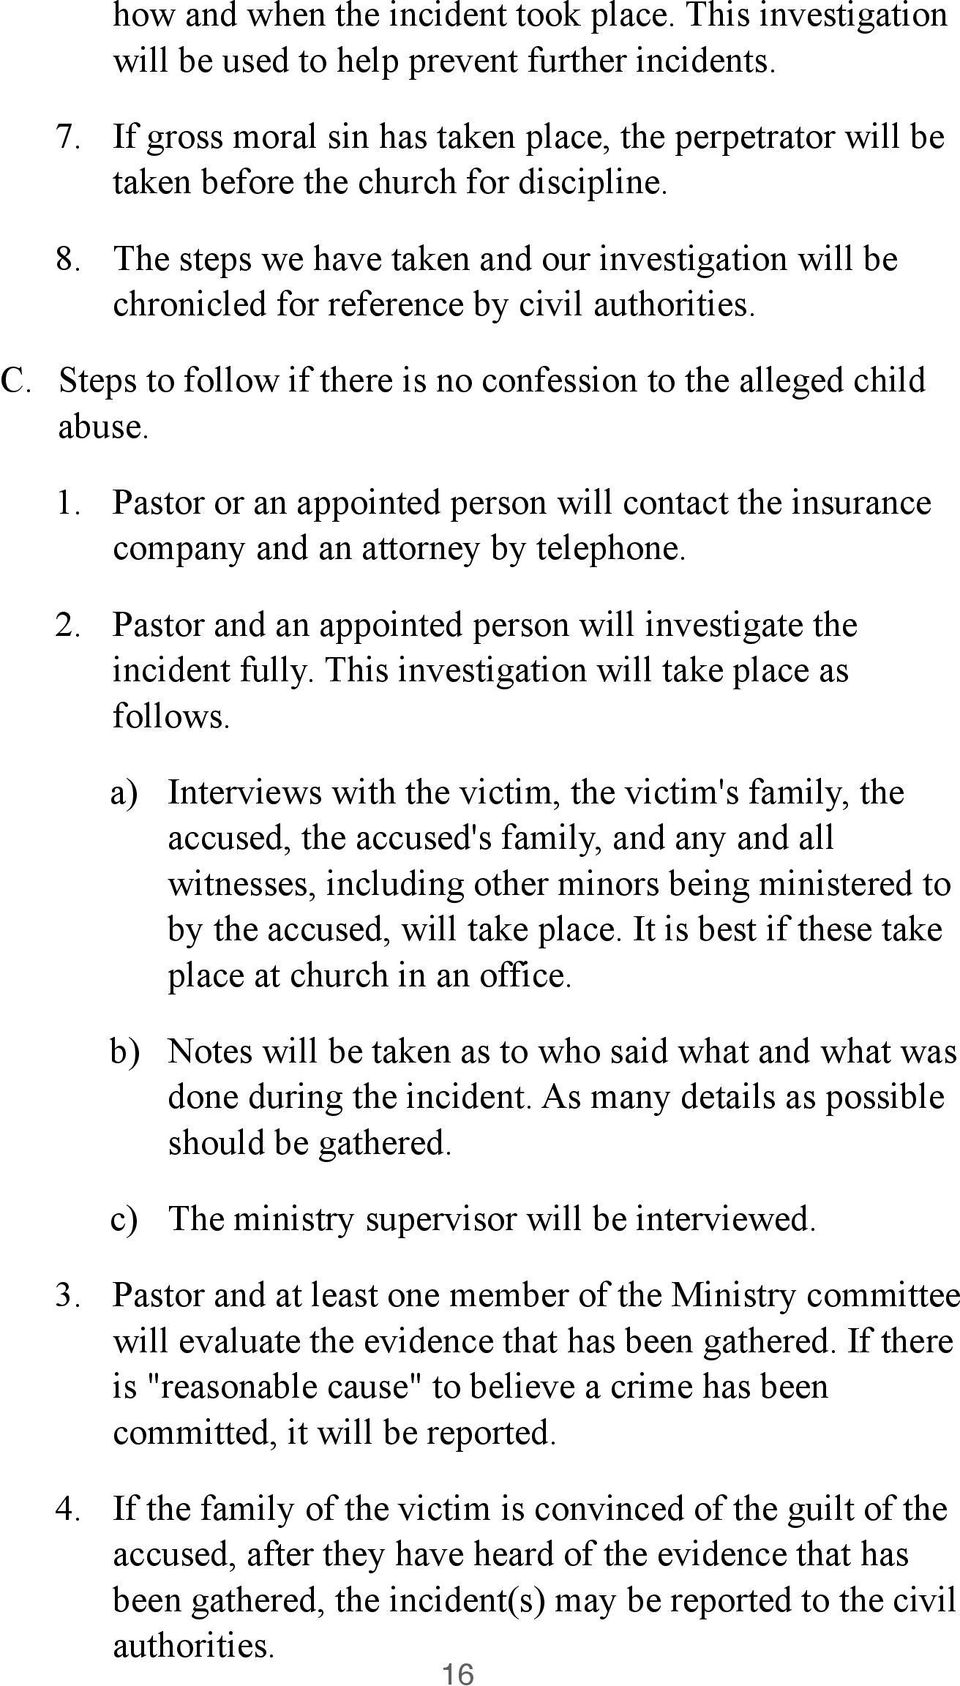 The steps we have taken and our investigation will be chronicled for reference by civil authorities. C. Steps to follow if there is no confession to the alleged child abuse. 1.